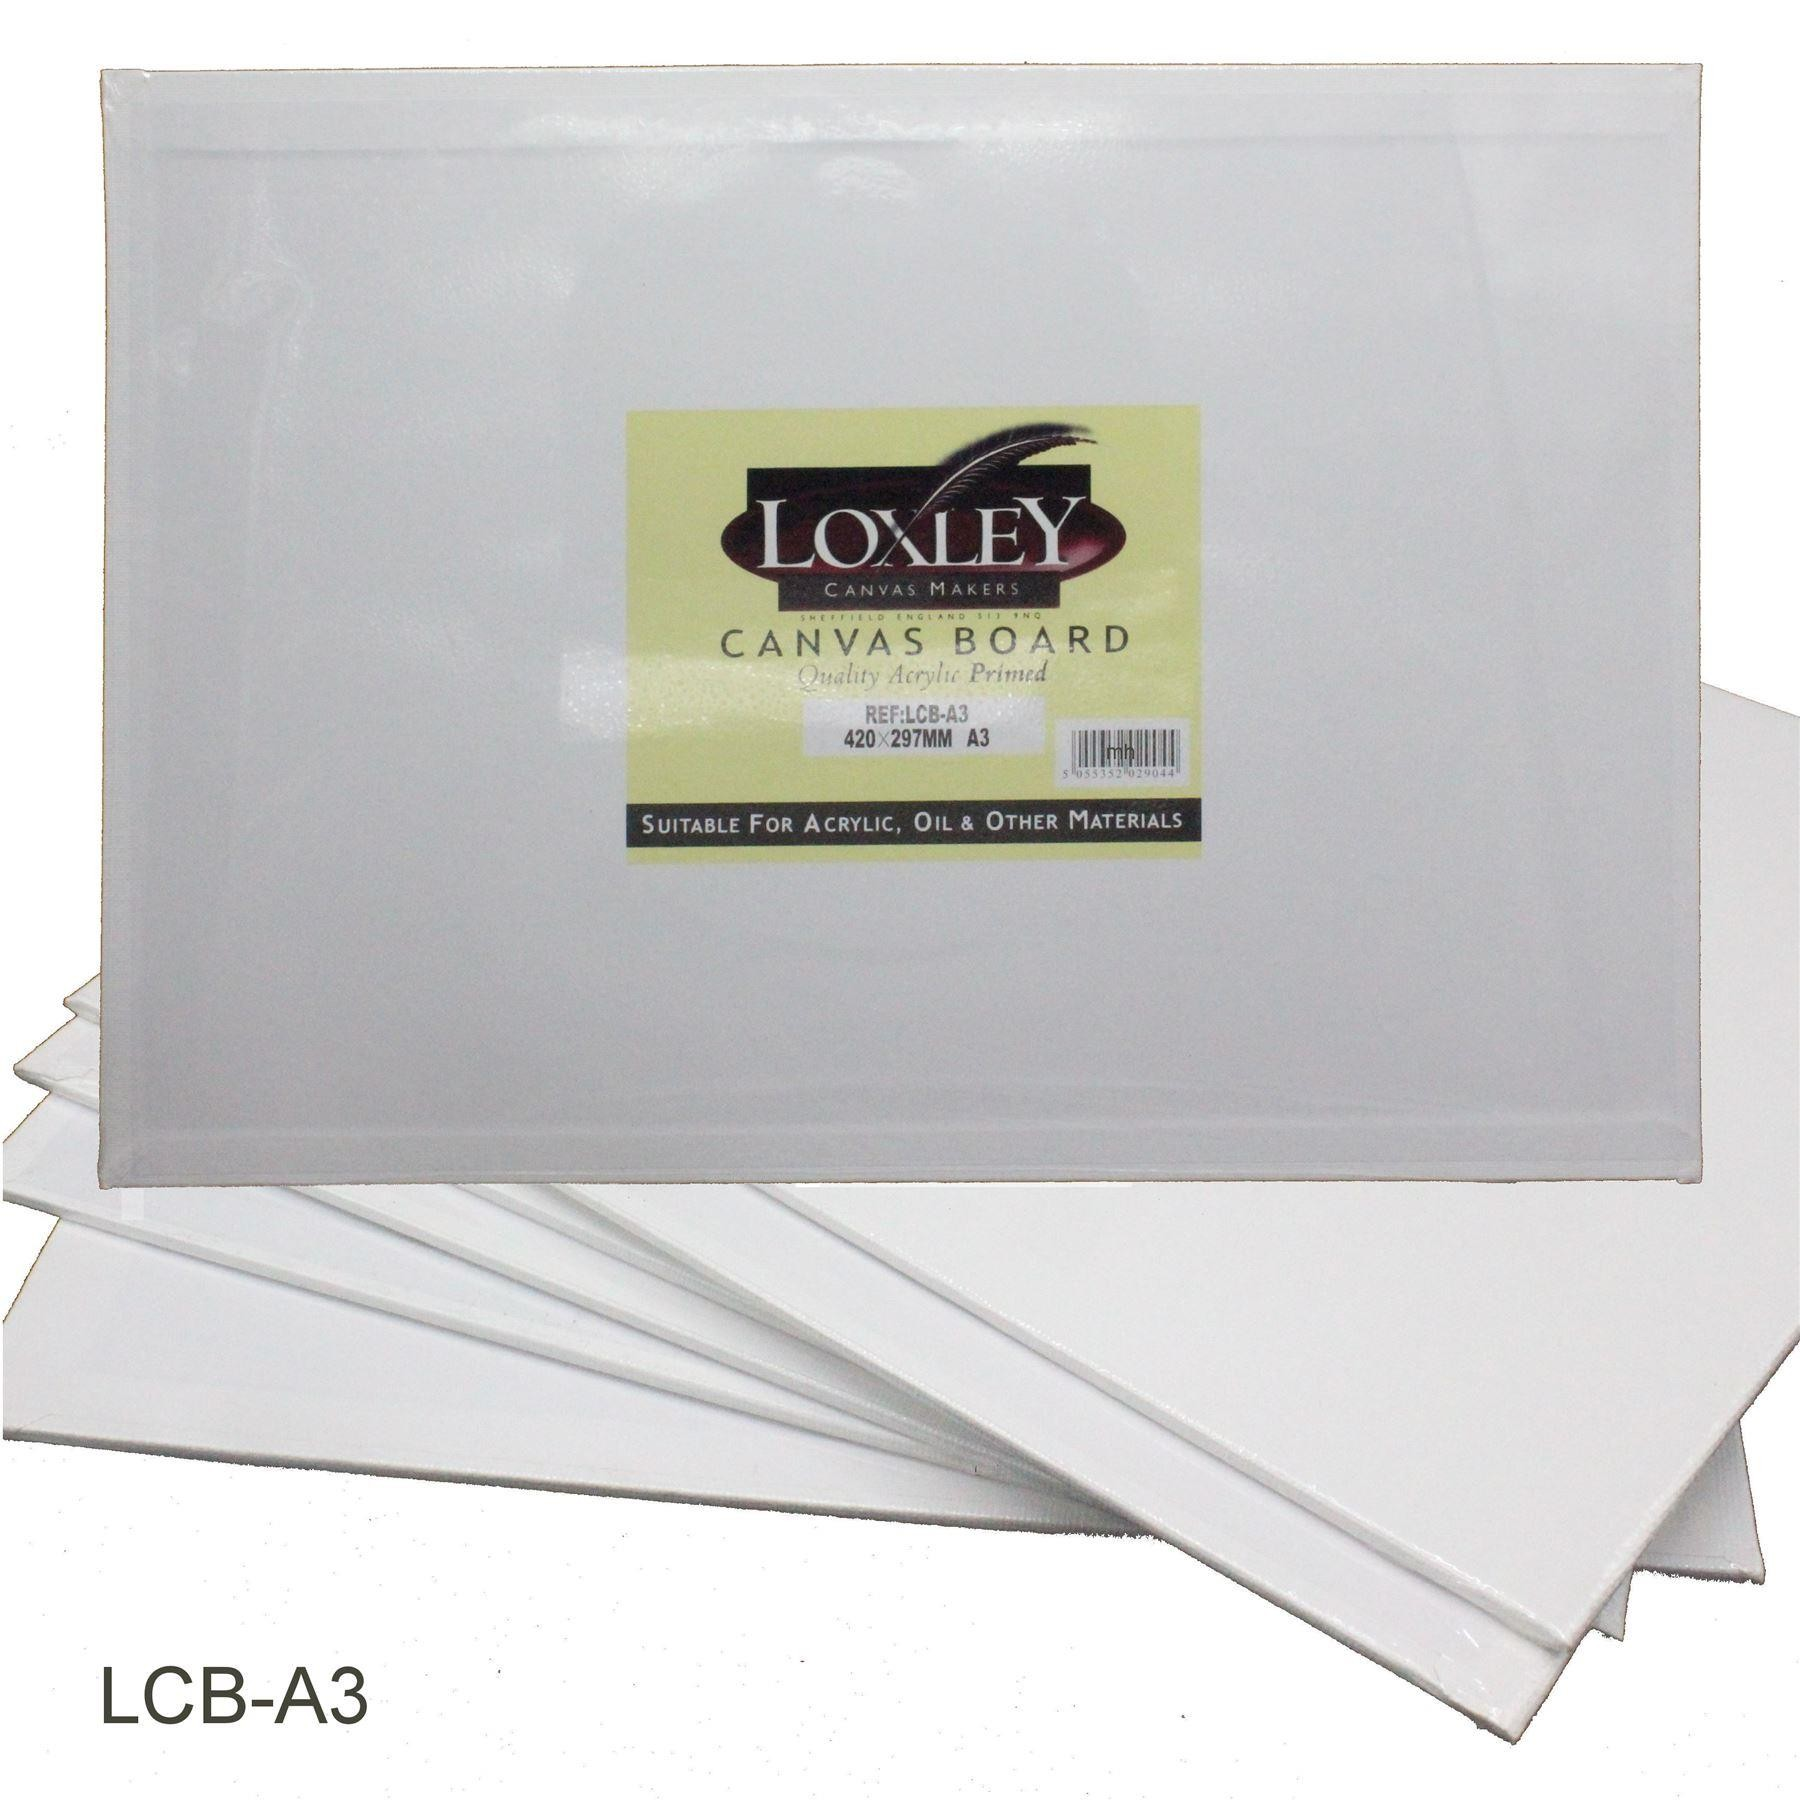 Primed Quality Acrylic Canvas Board from Loxley (A3)